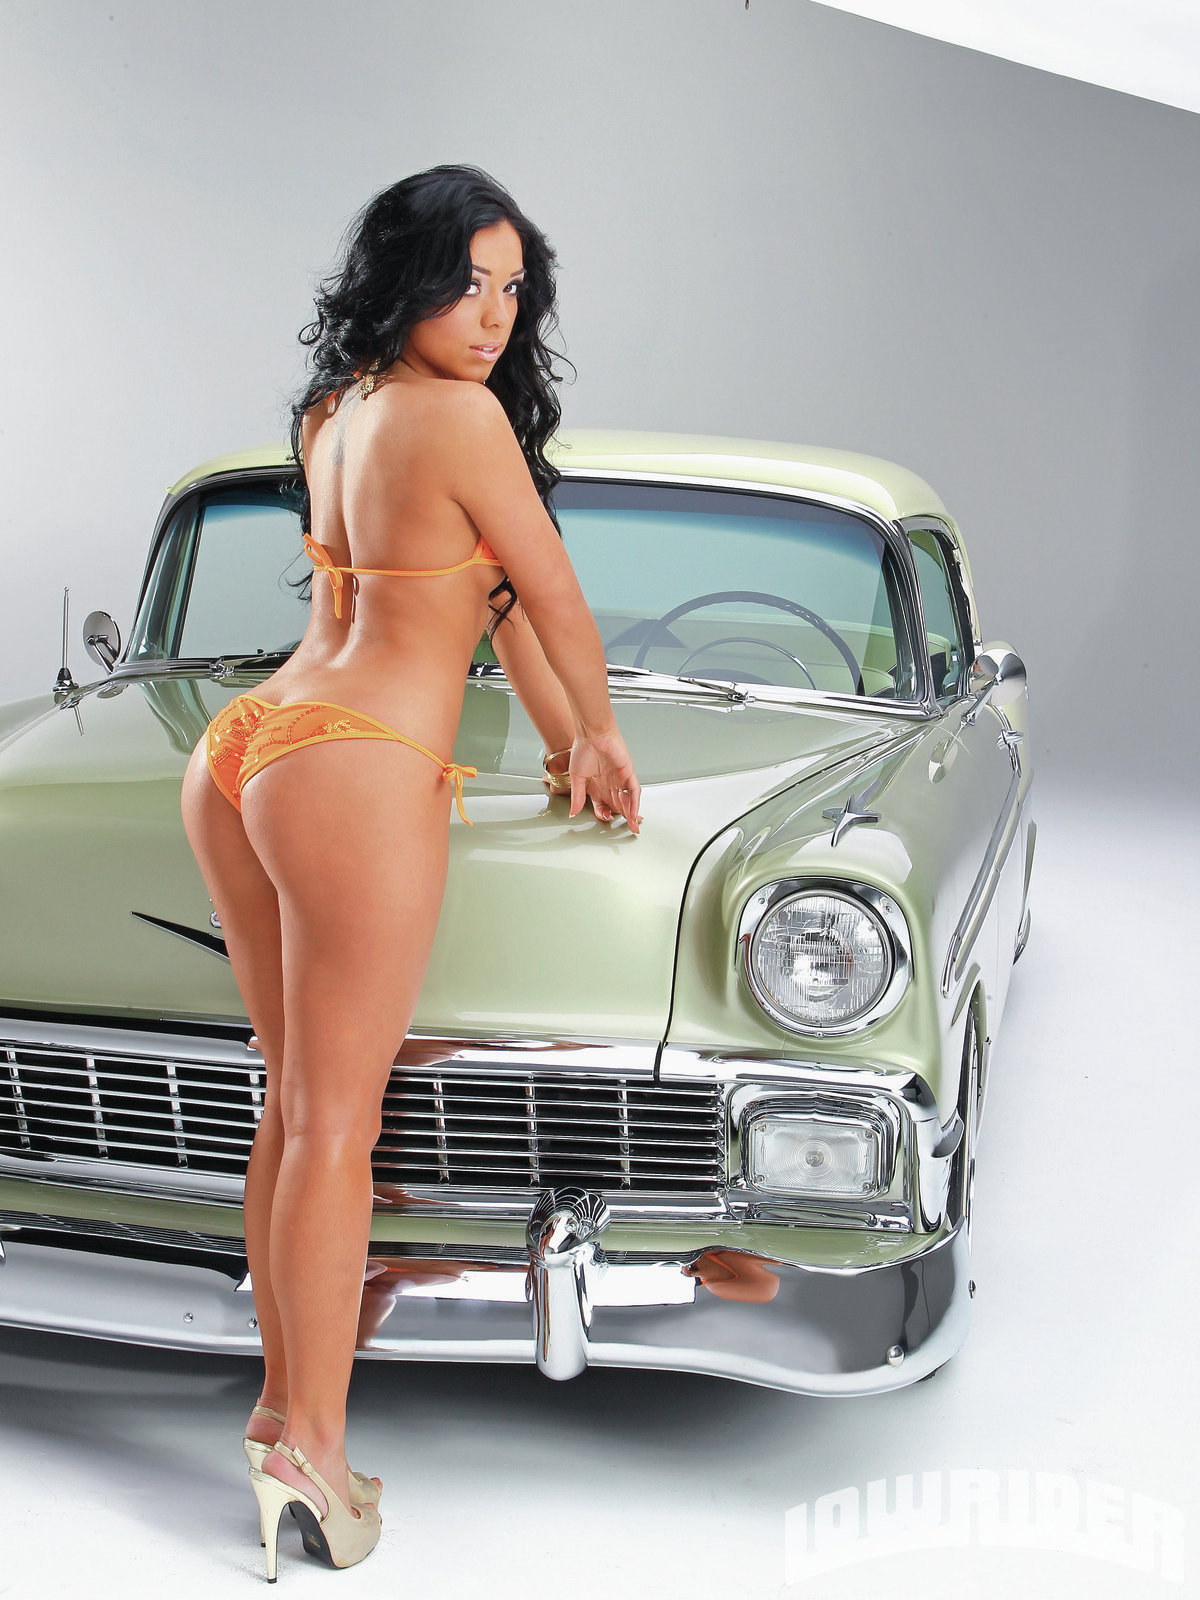 Topless lowrider magazine girls